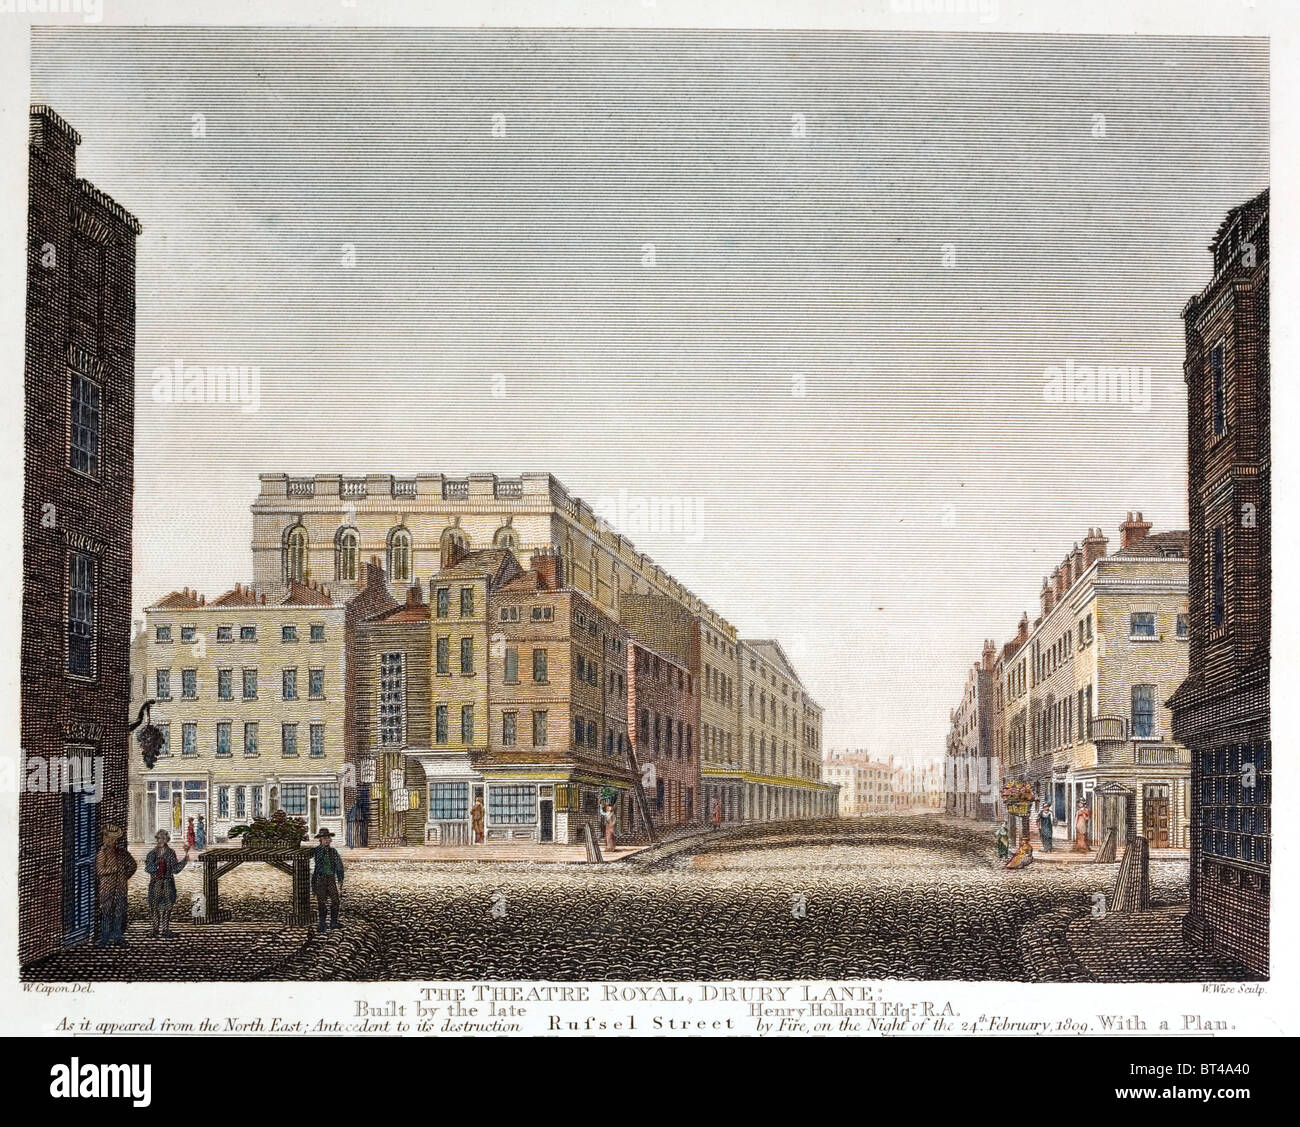 The third Theatre Royal Drury Lane of 1794. It was destroyed in a fire in 1809. - Stock Image